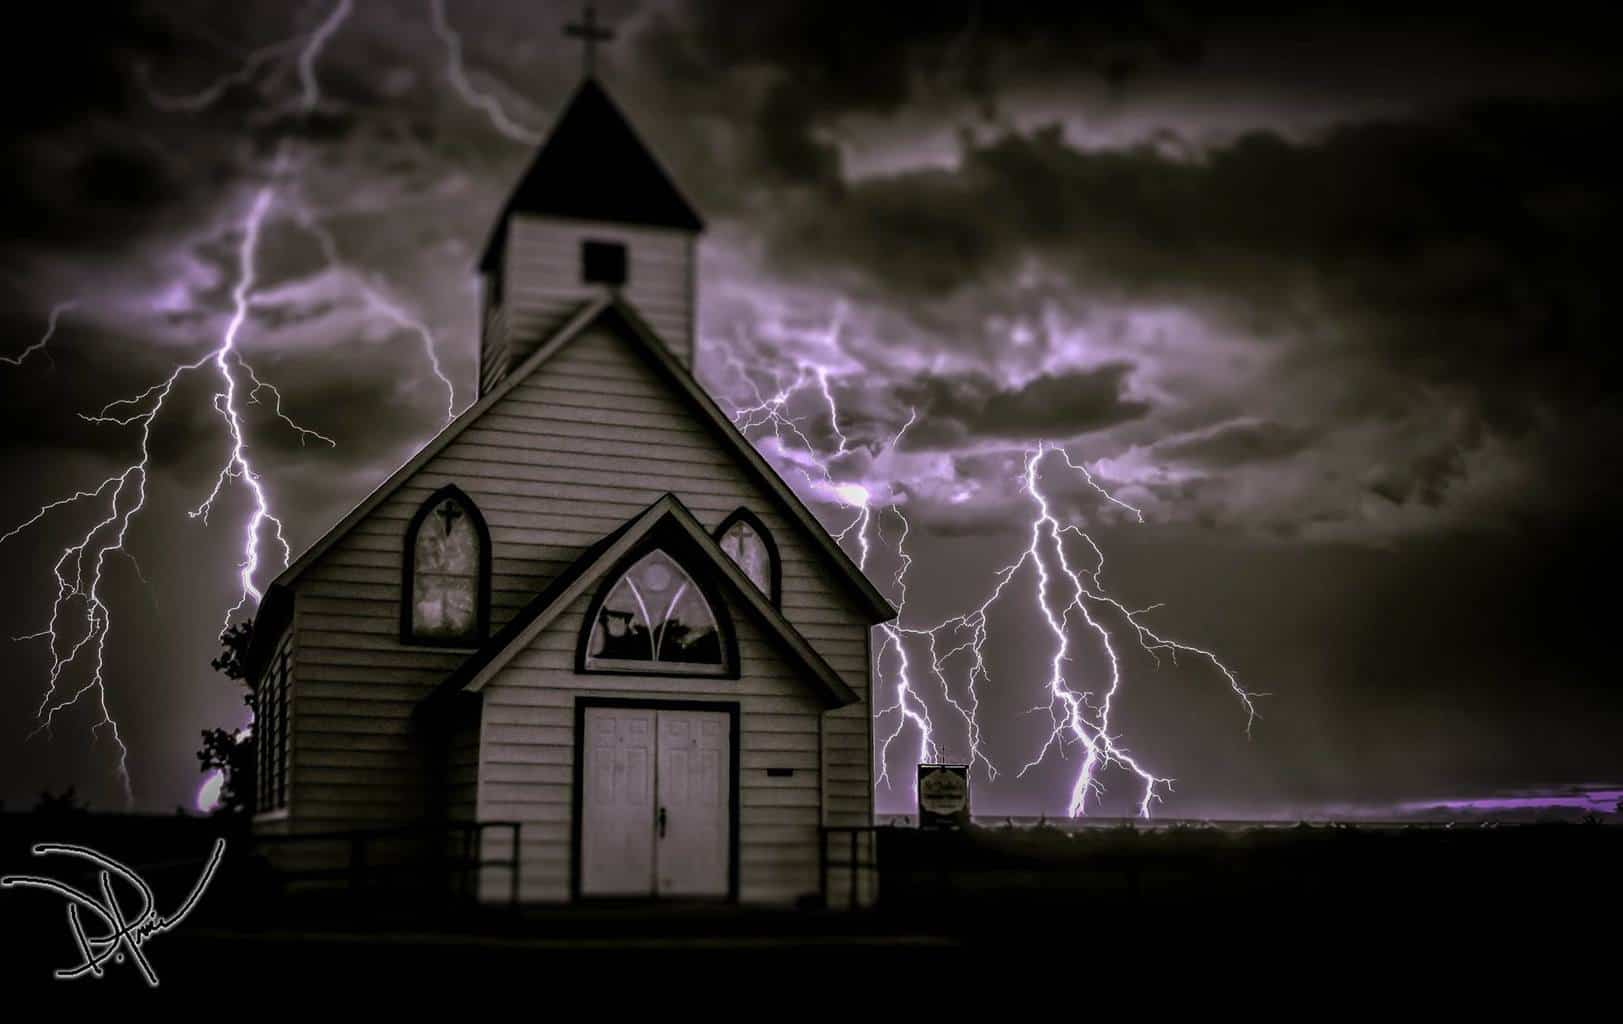 WoW its been awhile since I have shared anything on this page.. Hope everyone is having a safe and fun holiday ... Here is a small church in NECO with a lightning barge behind it .. Enjoy and have a good Thanksgiving